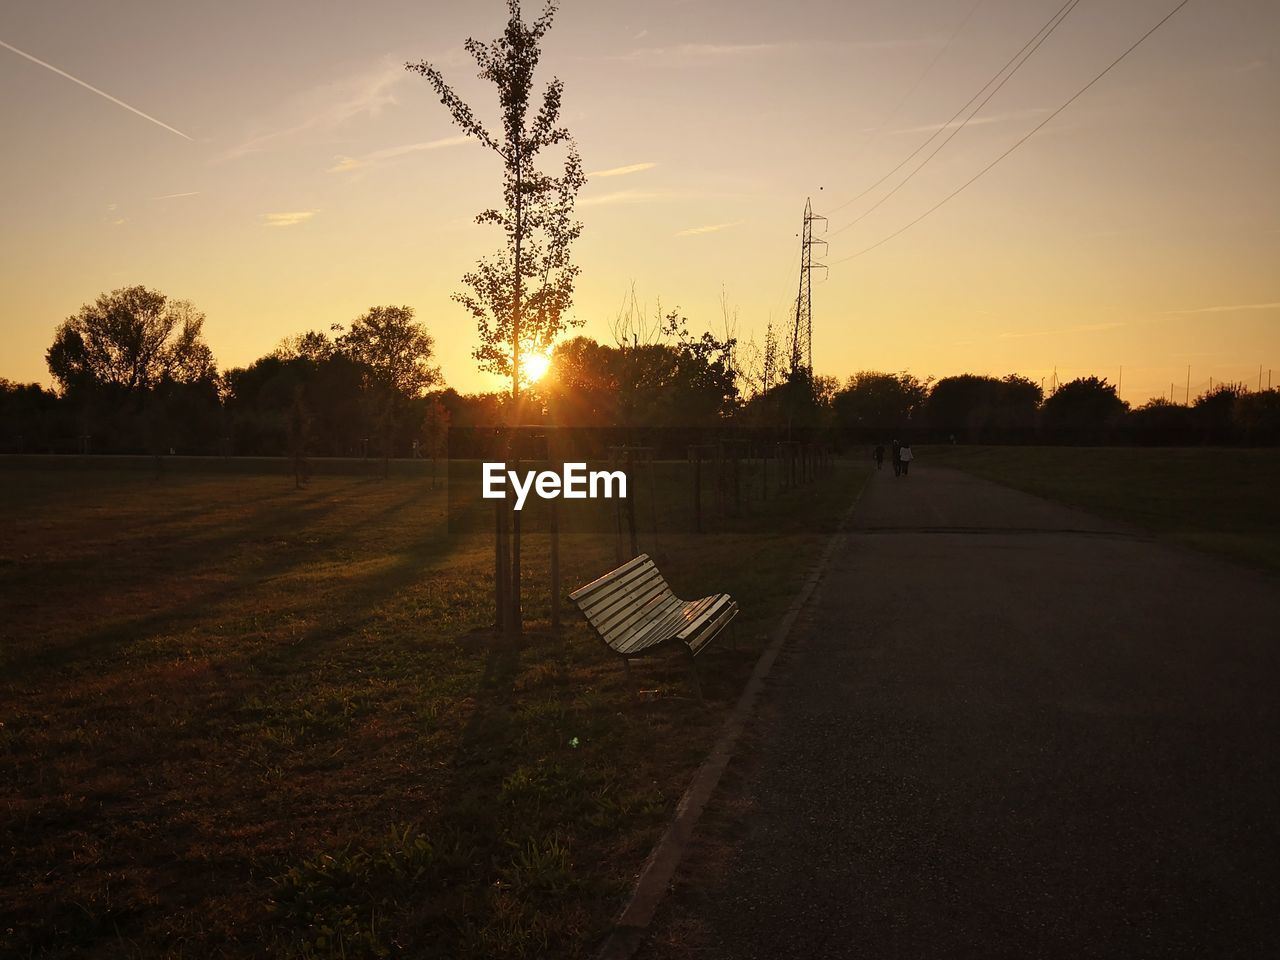 sunset, sky, tree, plant, nature, tranquility, tranquil scene, beauty in nature, sun, scenics - nature, sunlight, no people, electricity, orange color, land, field, landscape, grass, empty, cable, outdoors, lens flare, power supply